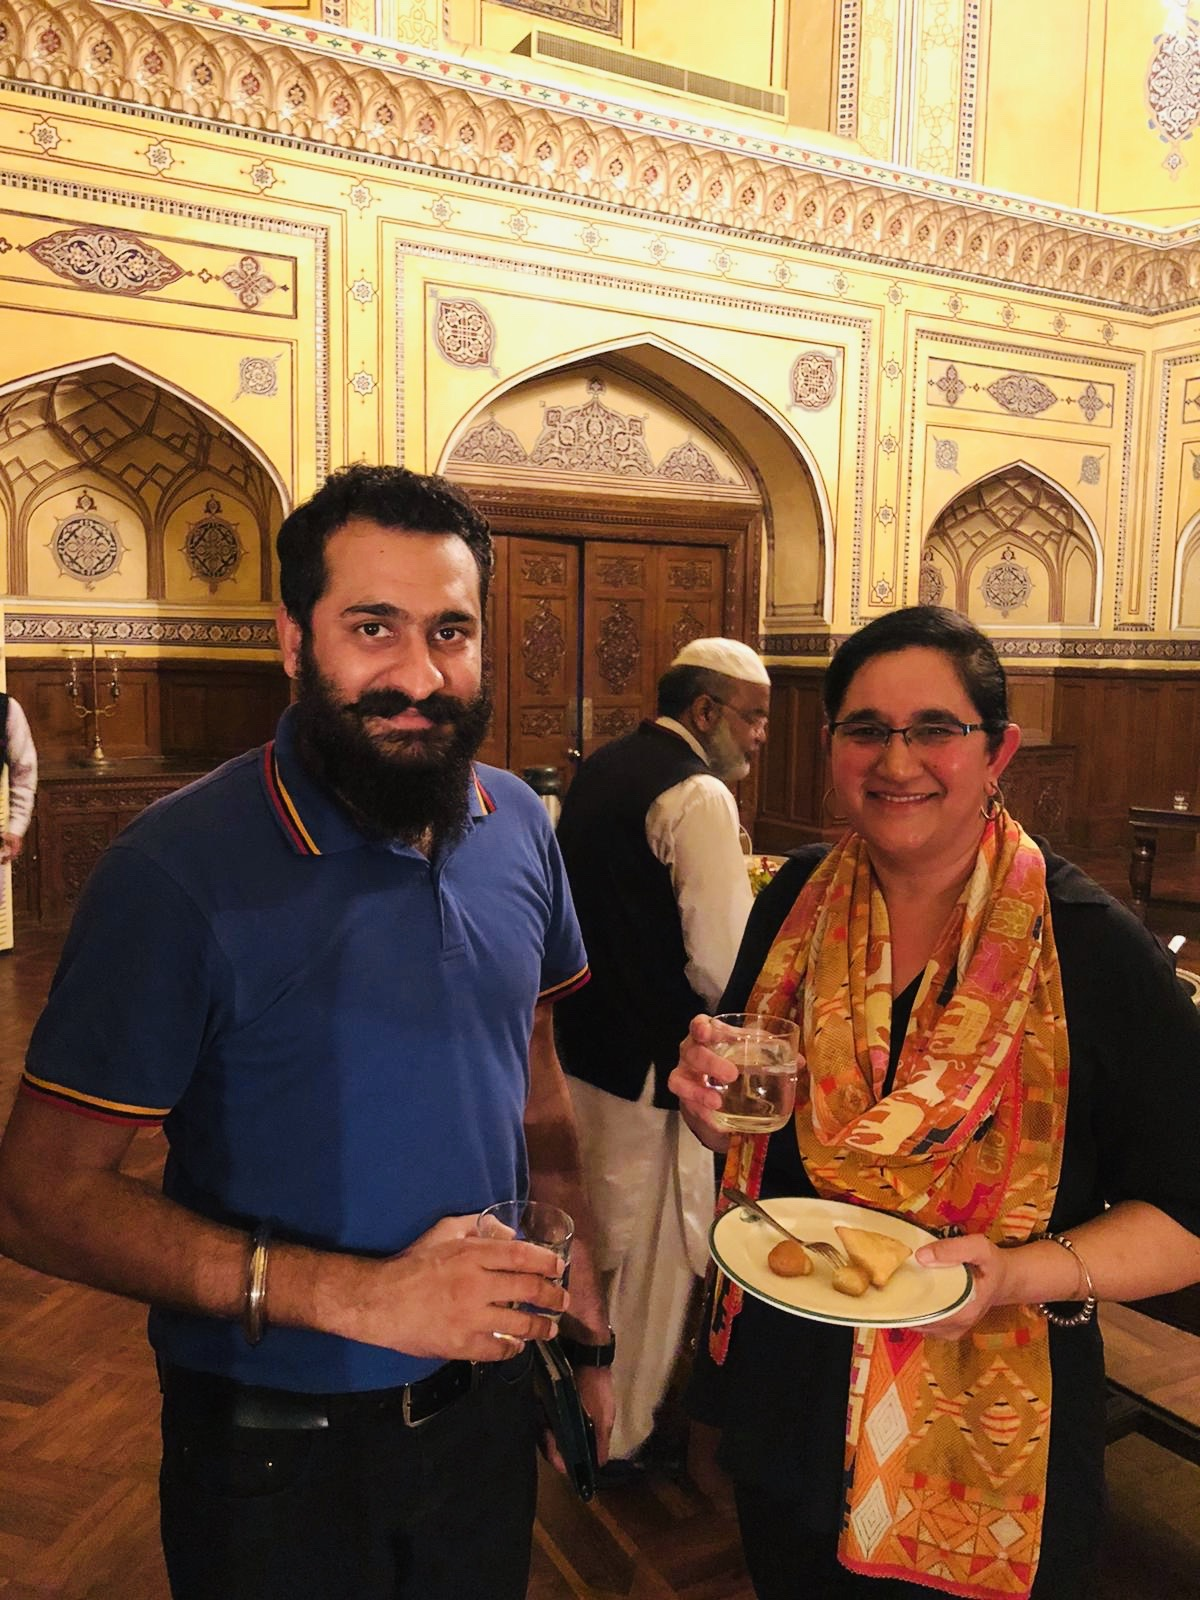 Pawan Singh Arora with Sonia Dhami at Governo House Photo by Devinder Singh